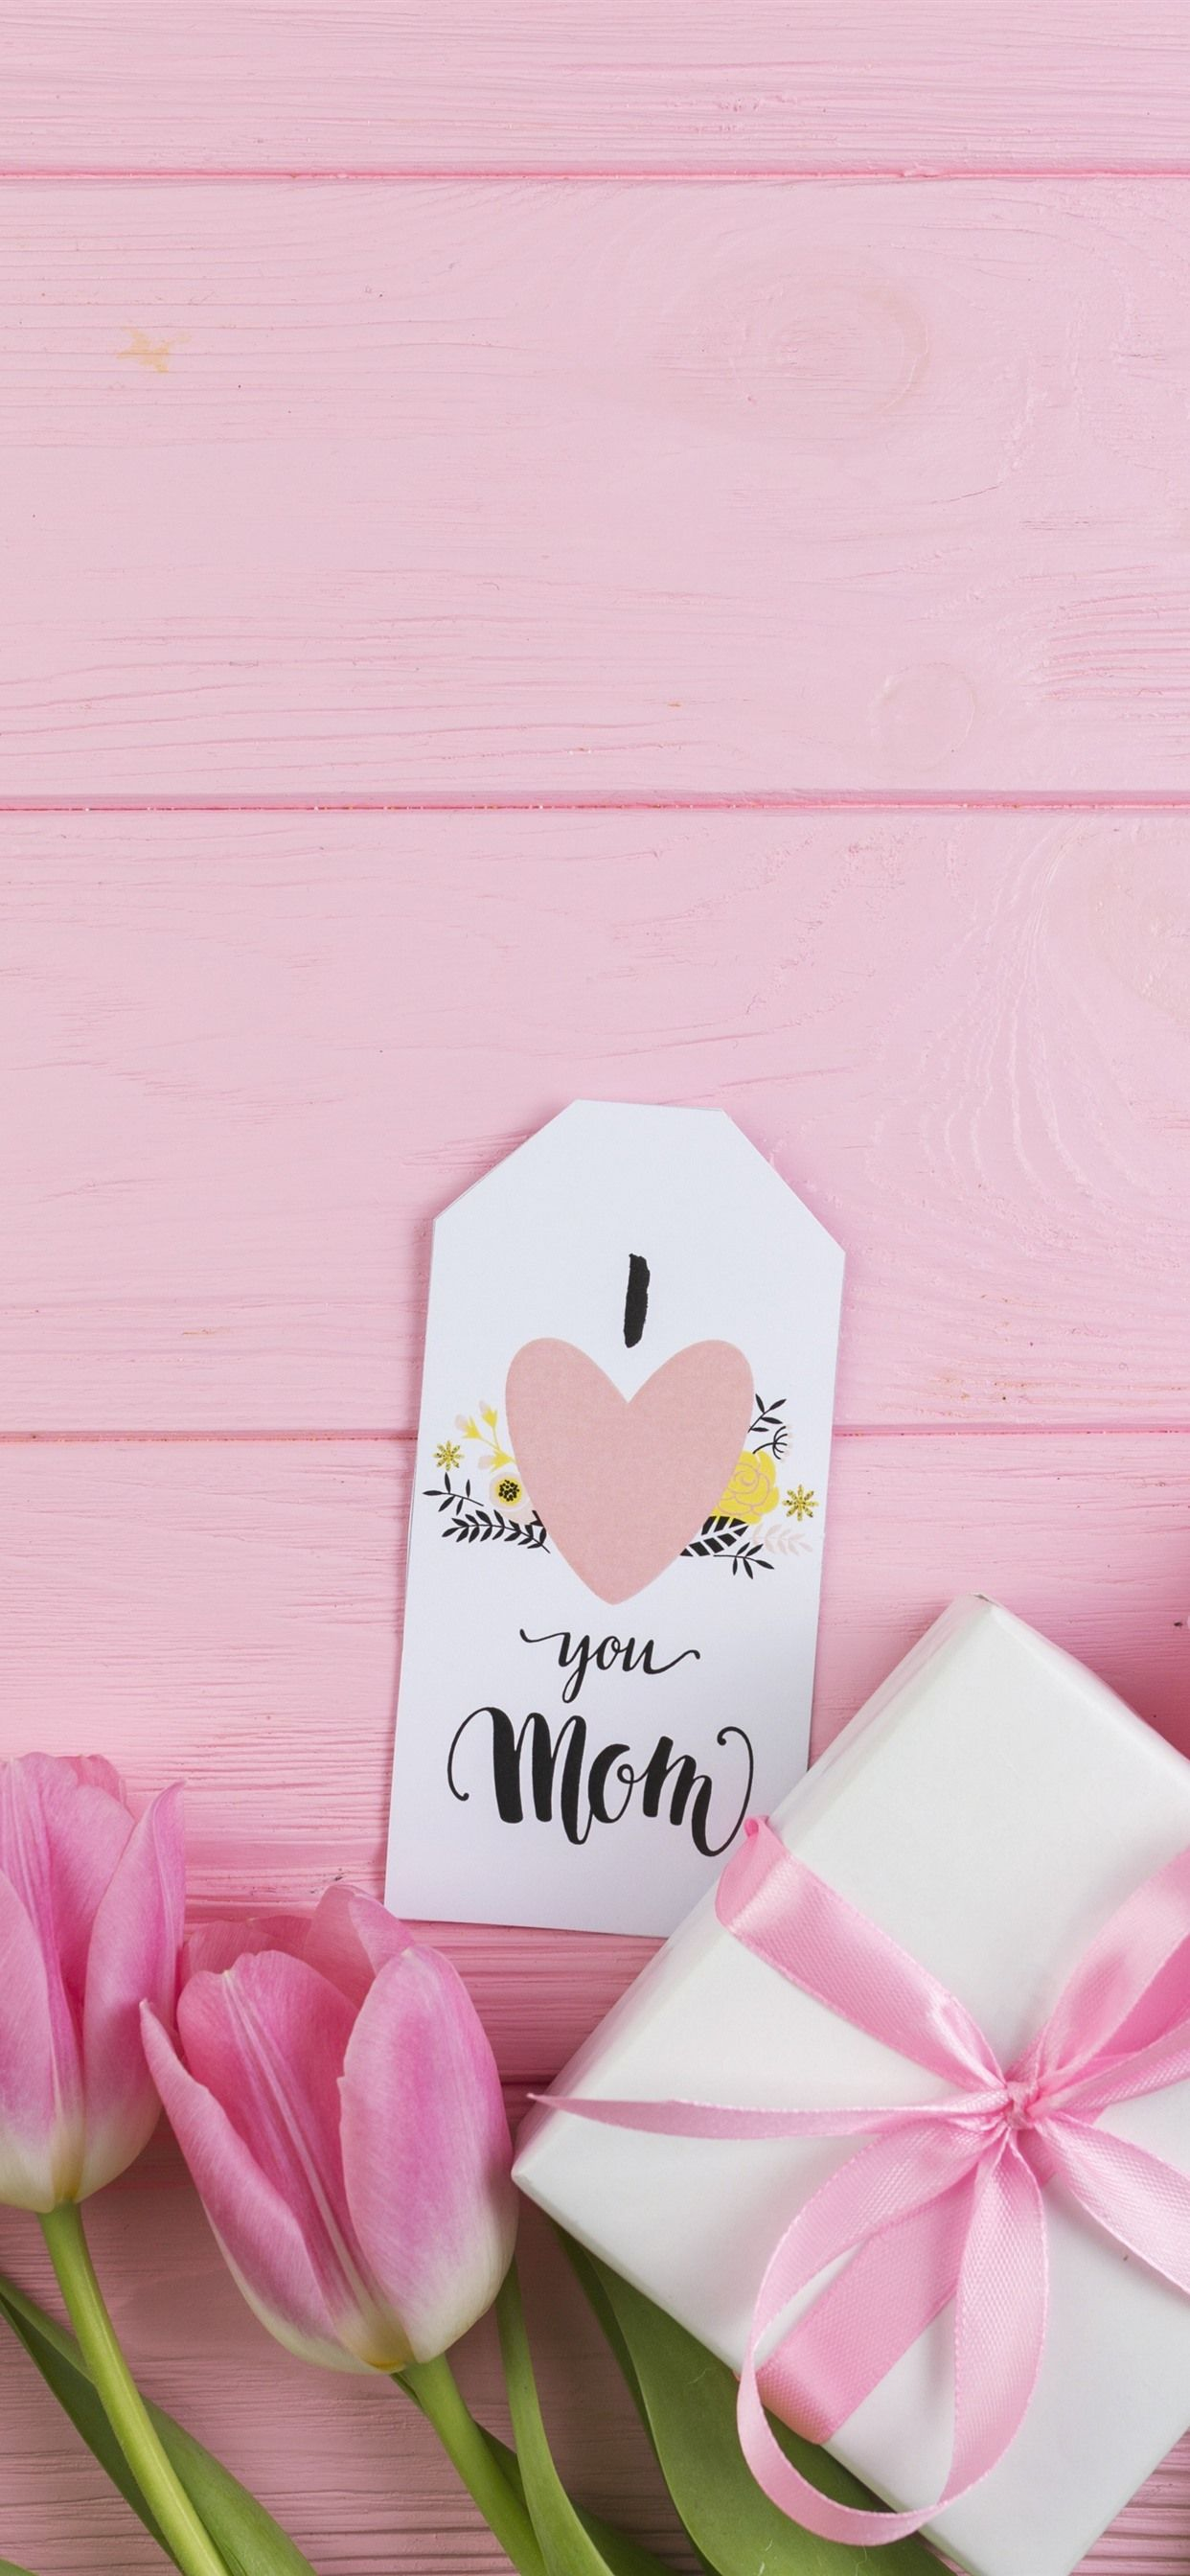 Mothers Day Iphone Wallpapers Wallpaper Cave